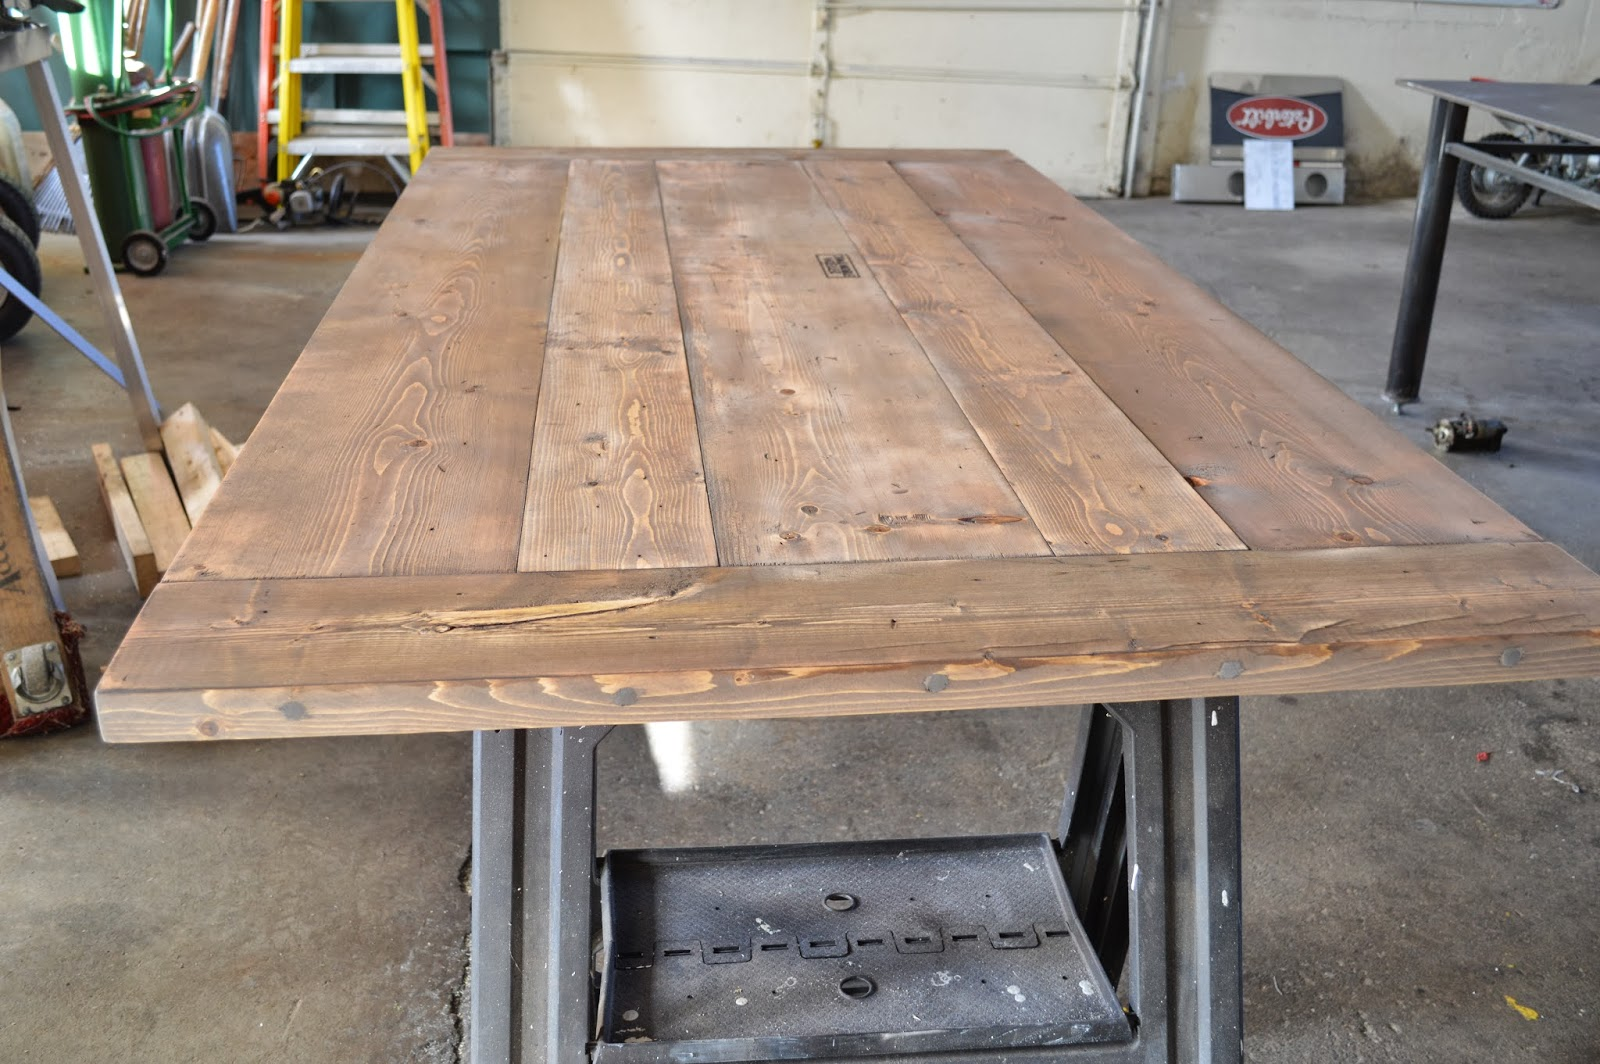 So I Sanded It Down But Was Still Determined To Get Lighter On A Trip Lowes Found Rust Oleums Wood Stain